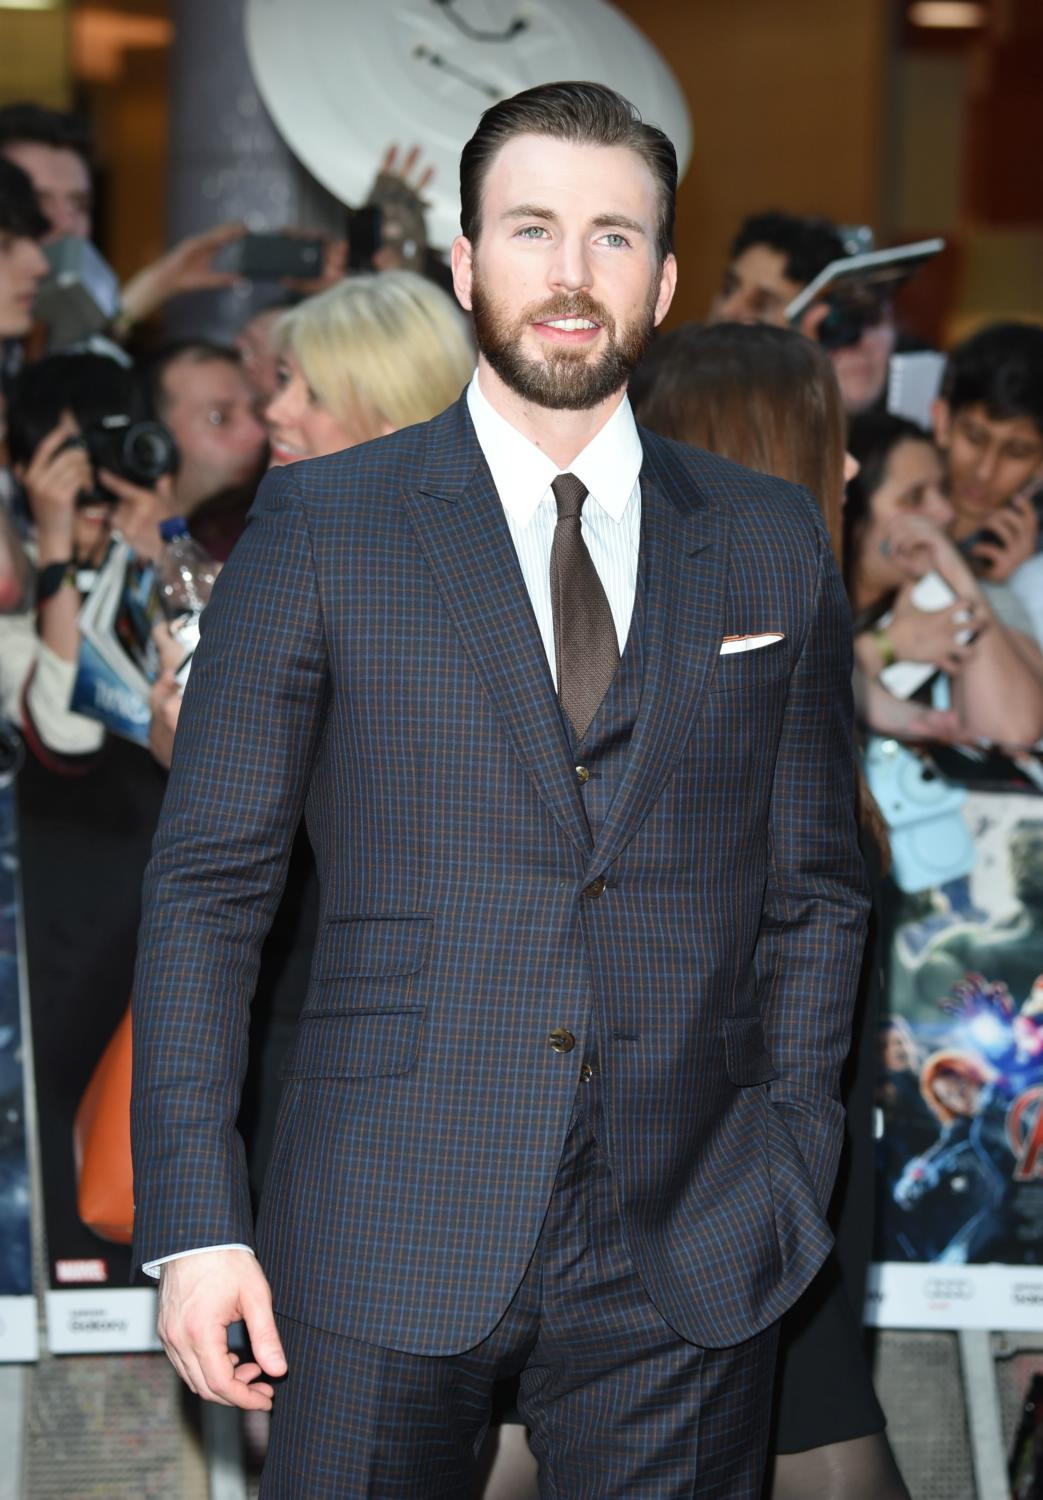 Chris Evans photo #650142